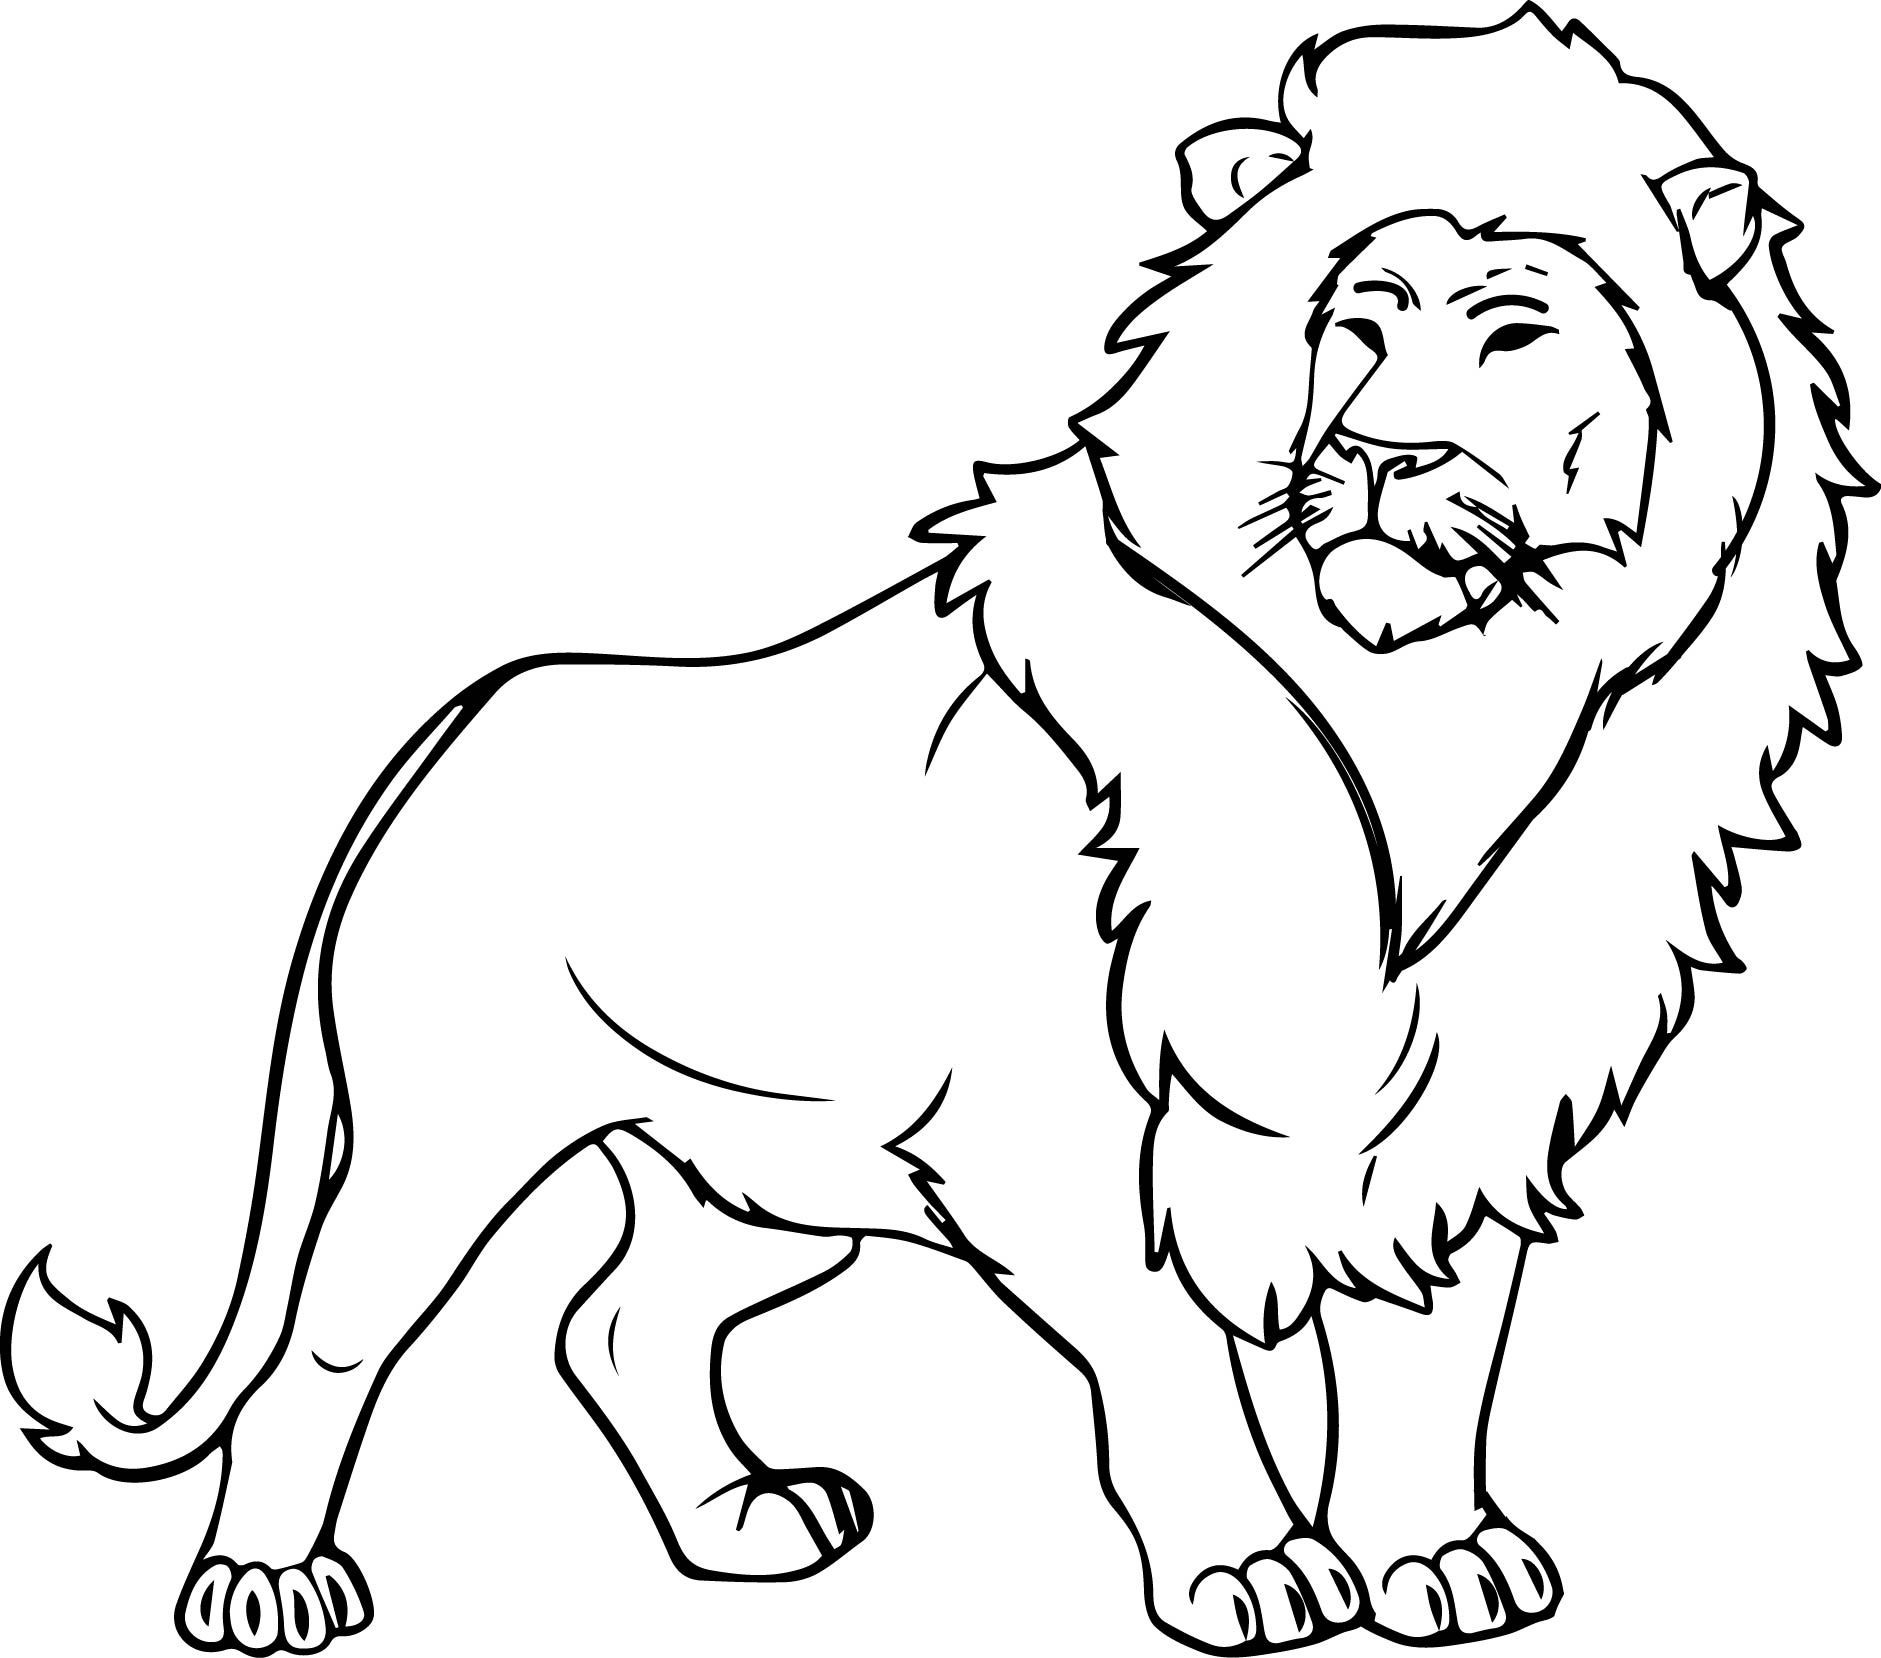 The Best Lion Coloring Pages Ideas For Kids Lion Drawing Lion Drawing Simple Lion Sketch There is a huge collection of craft ideas. the best lion coloring pages ideas for